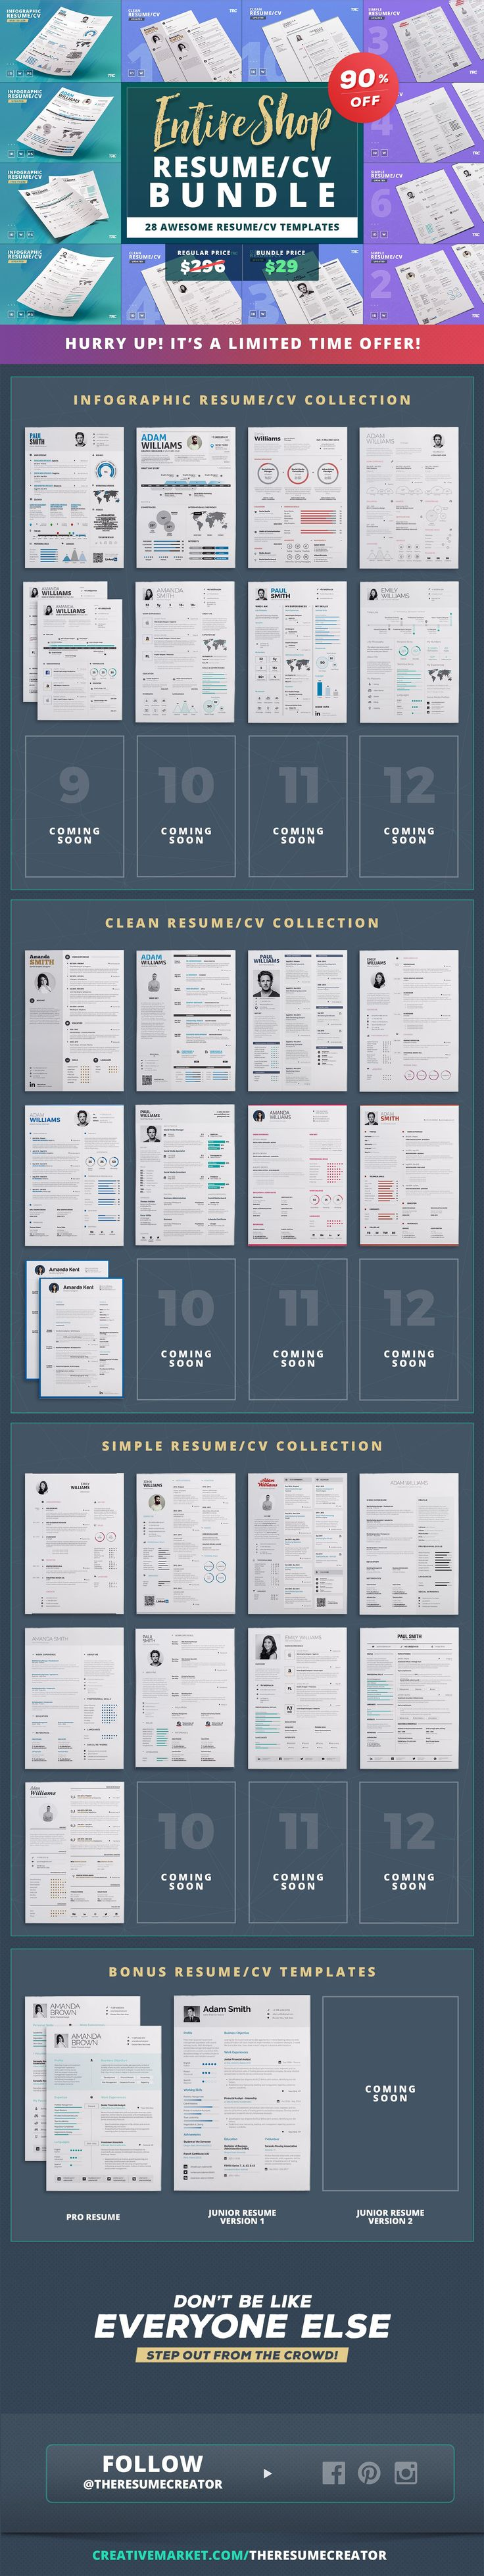 40 Best Resume Cv Bundles And Offers Images On Pinterest